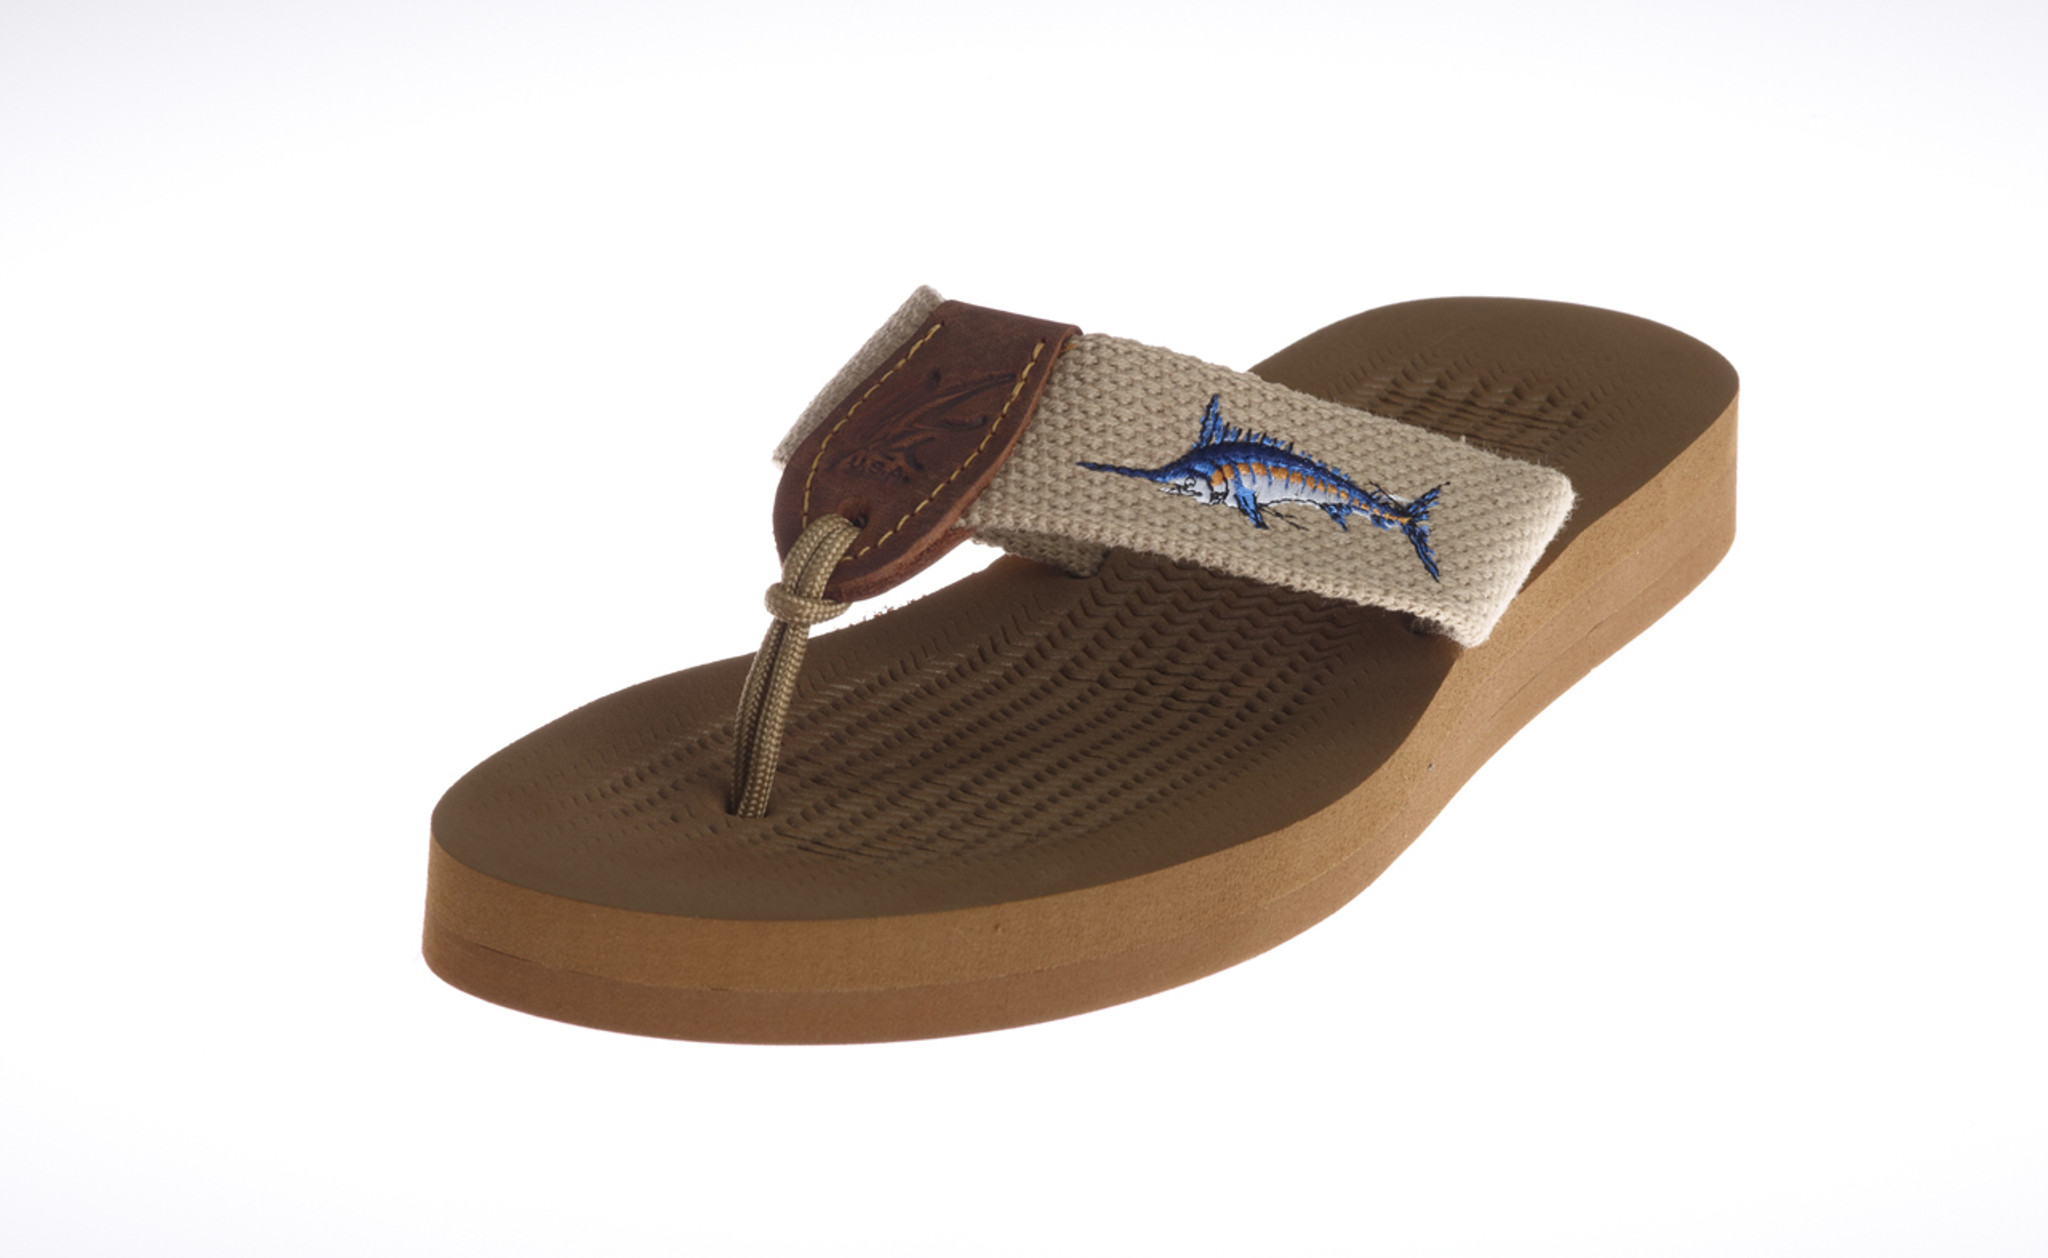 d5ebabf46 Men s Rubber Footbed Sandal with Embroidered on Webbing Artwork.